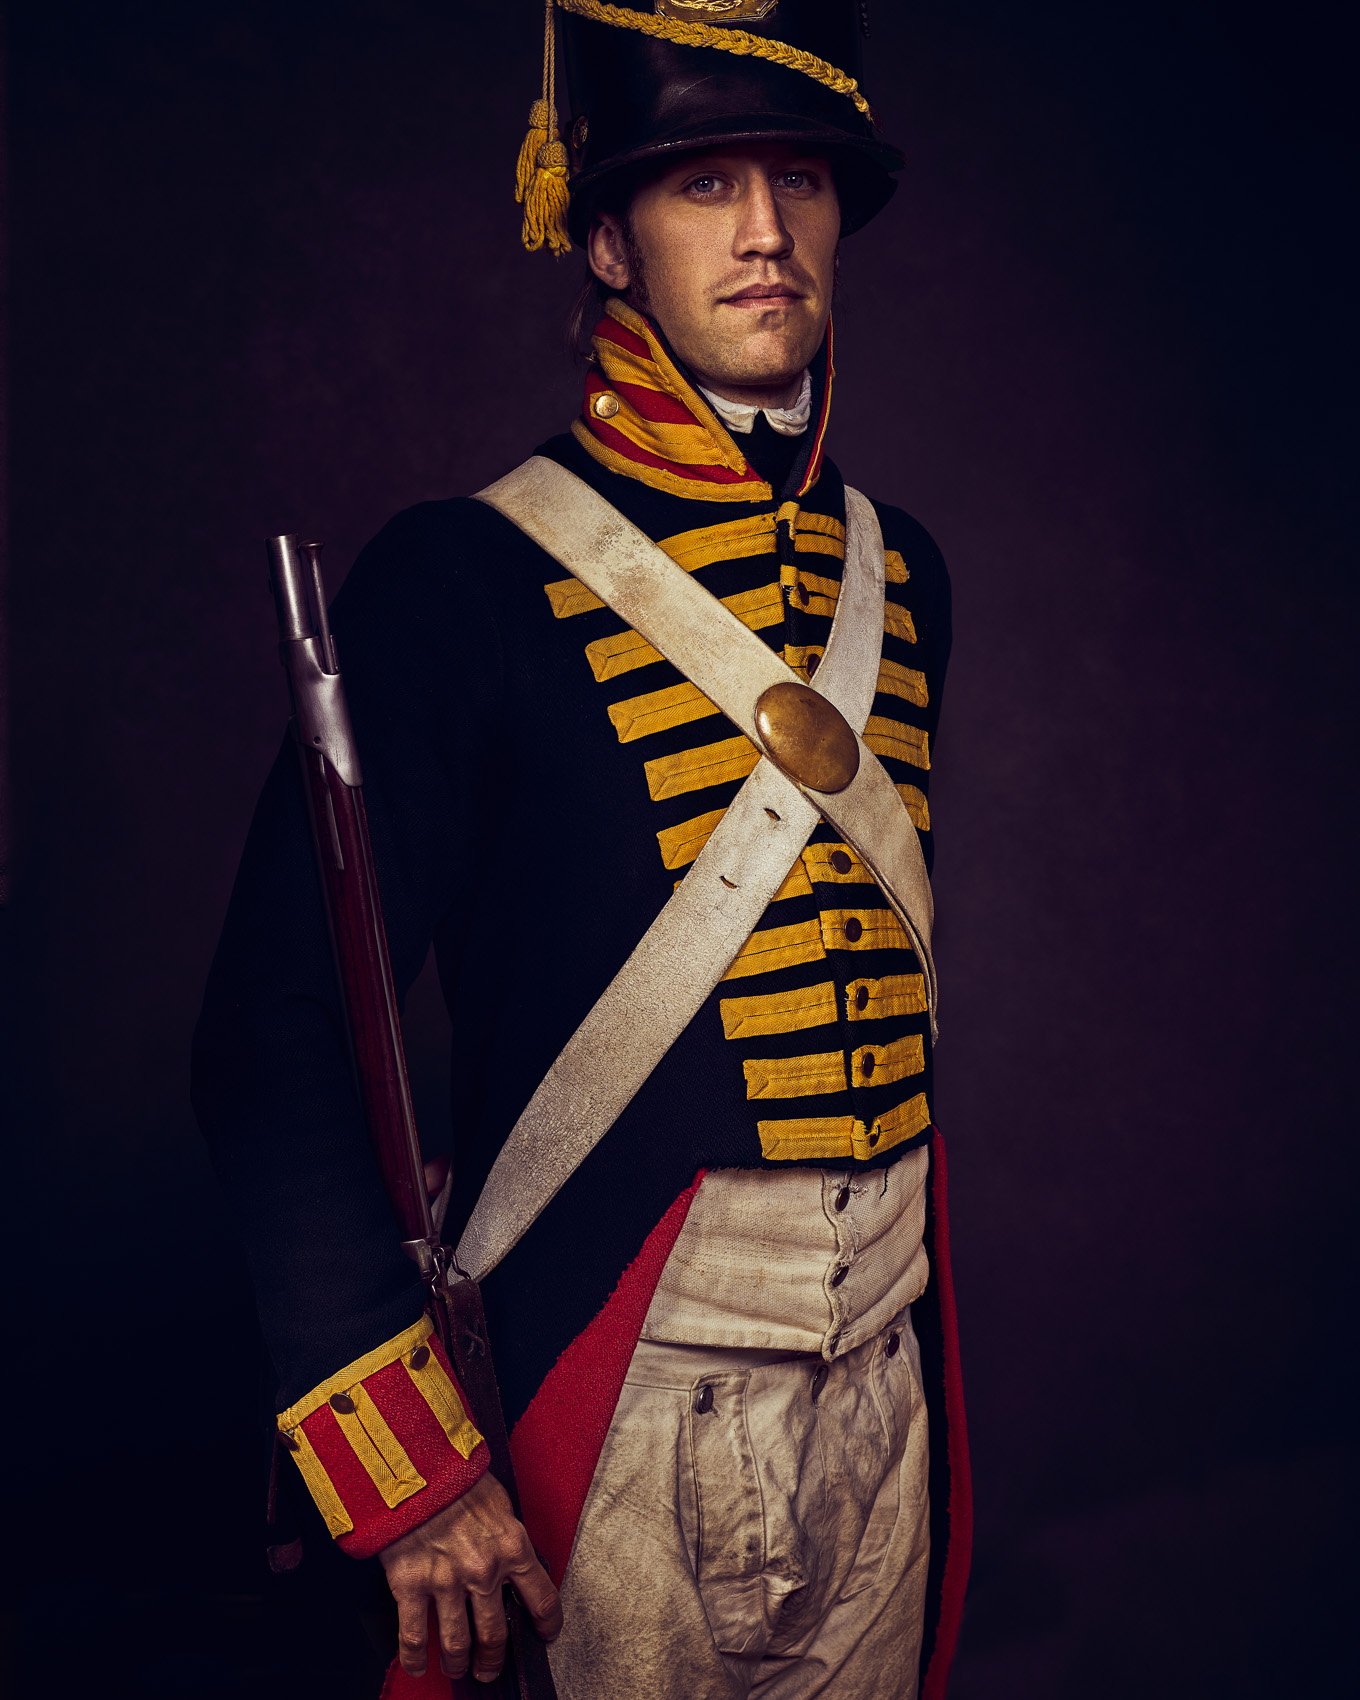 WAR OF 1812 REENACTOR AT OLD FORT NIAGARA